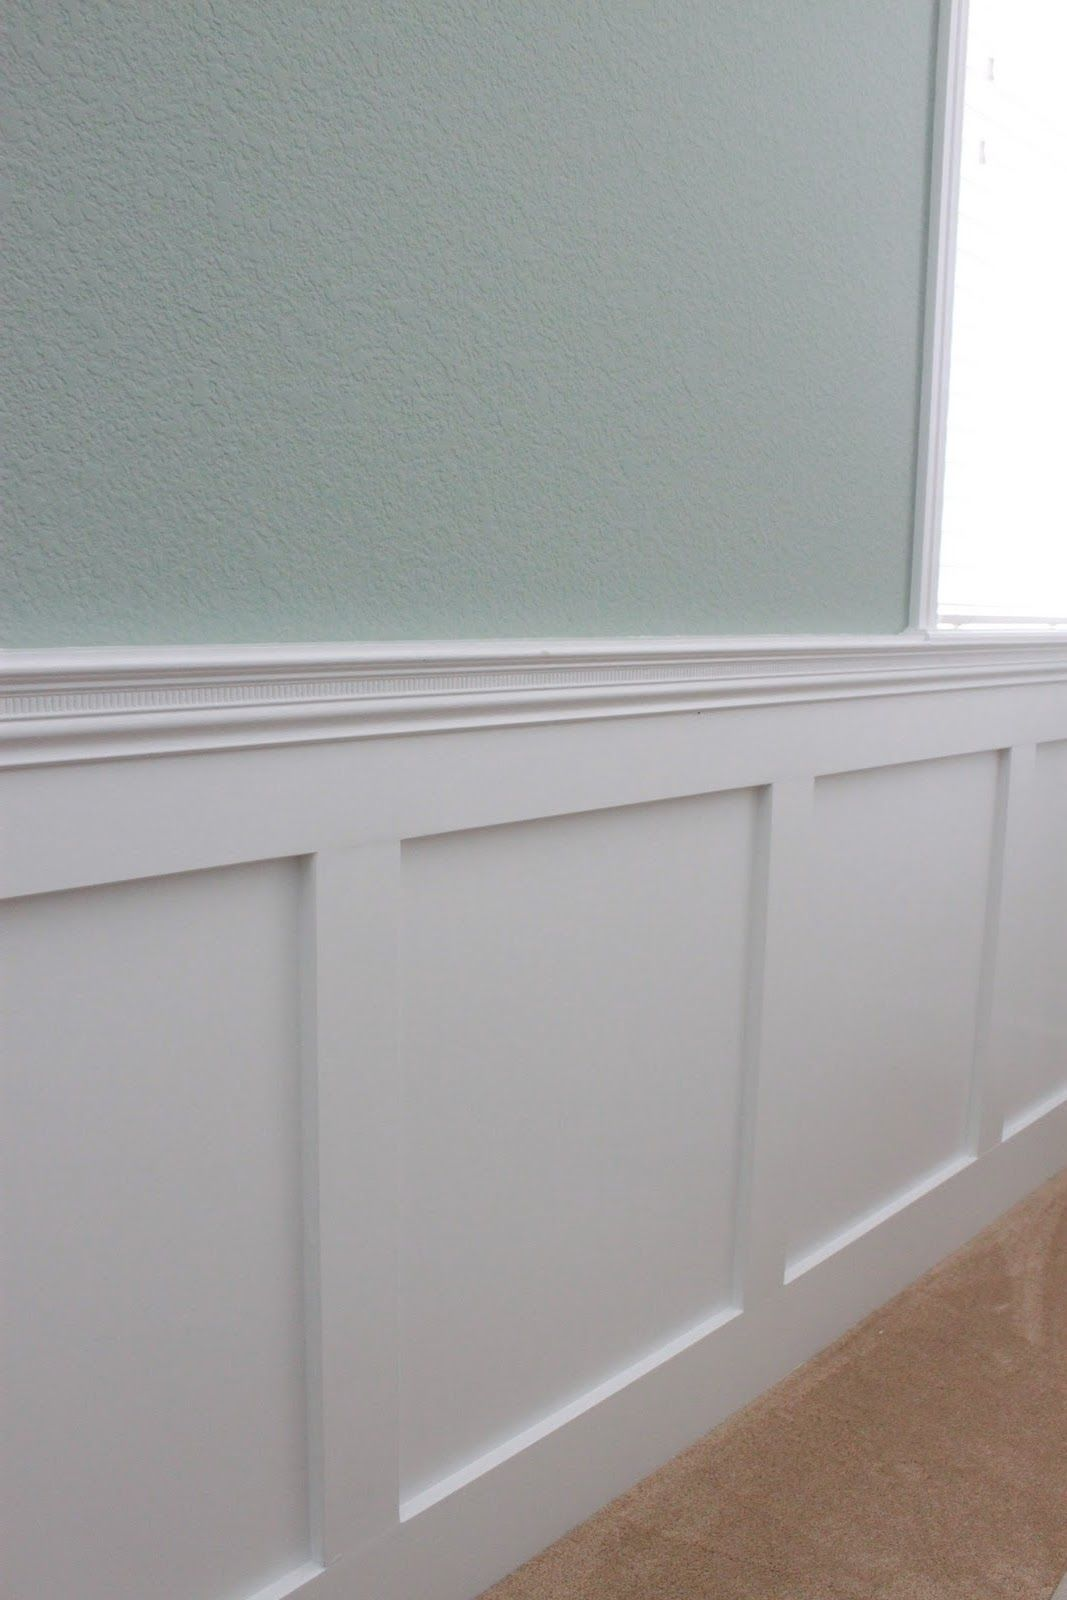 Share for Dining room wainscoting ideas